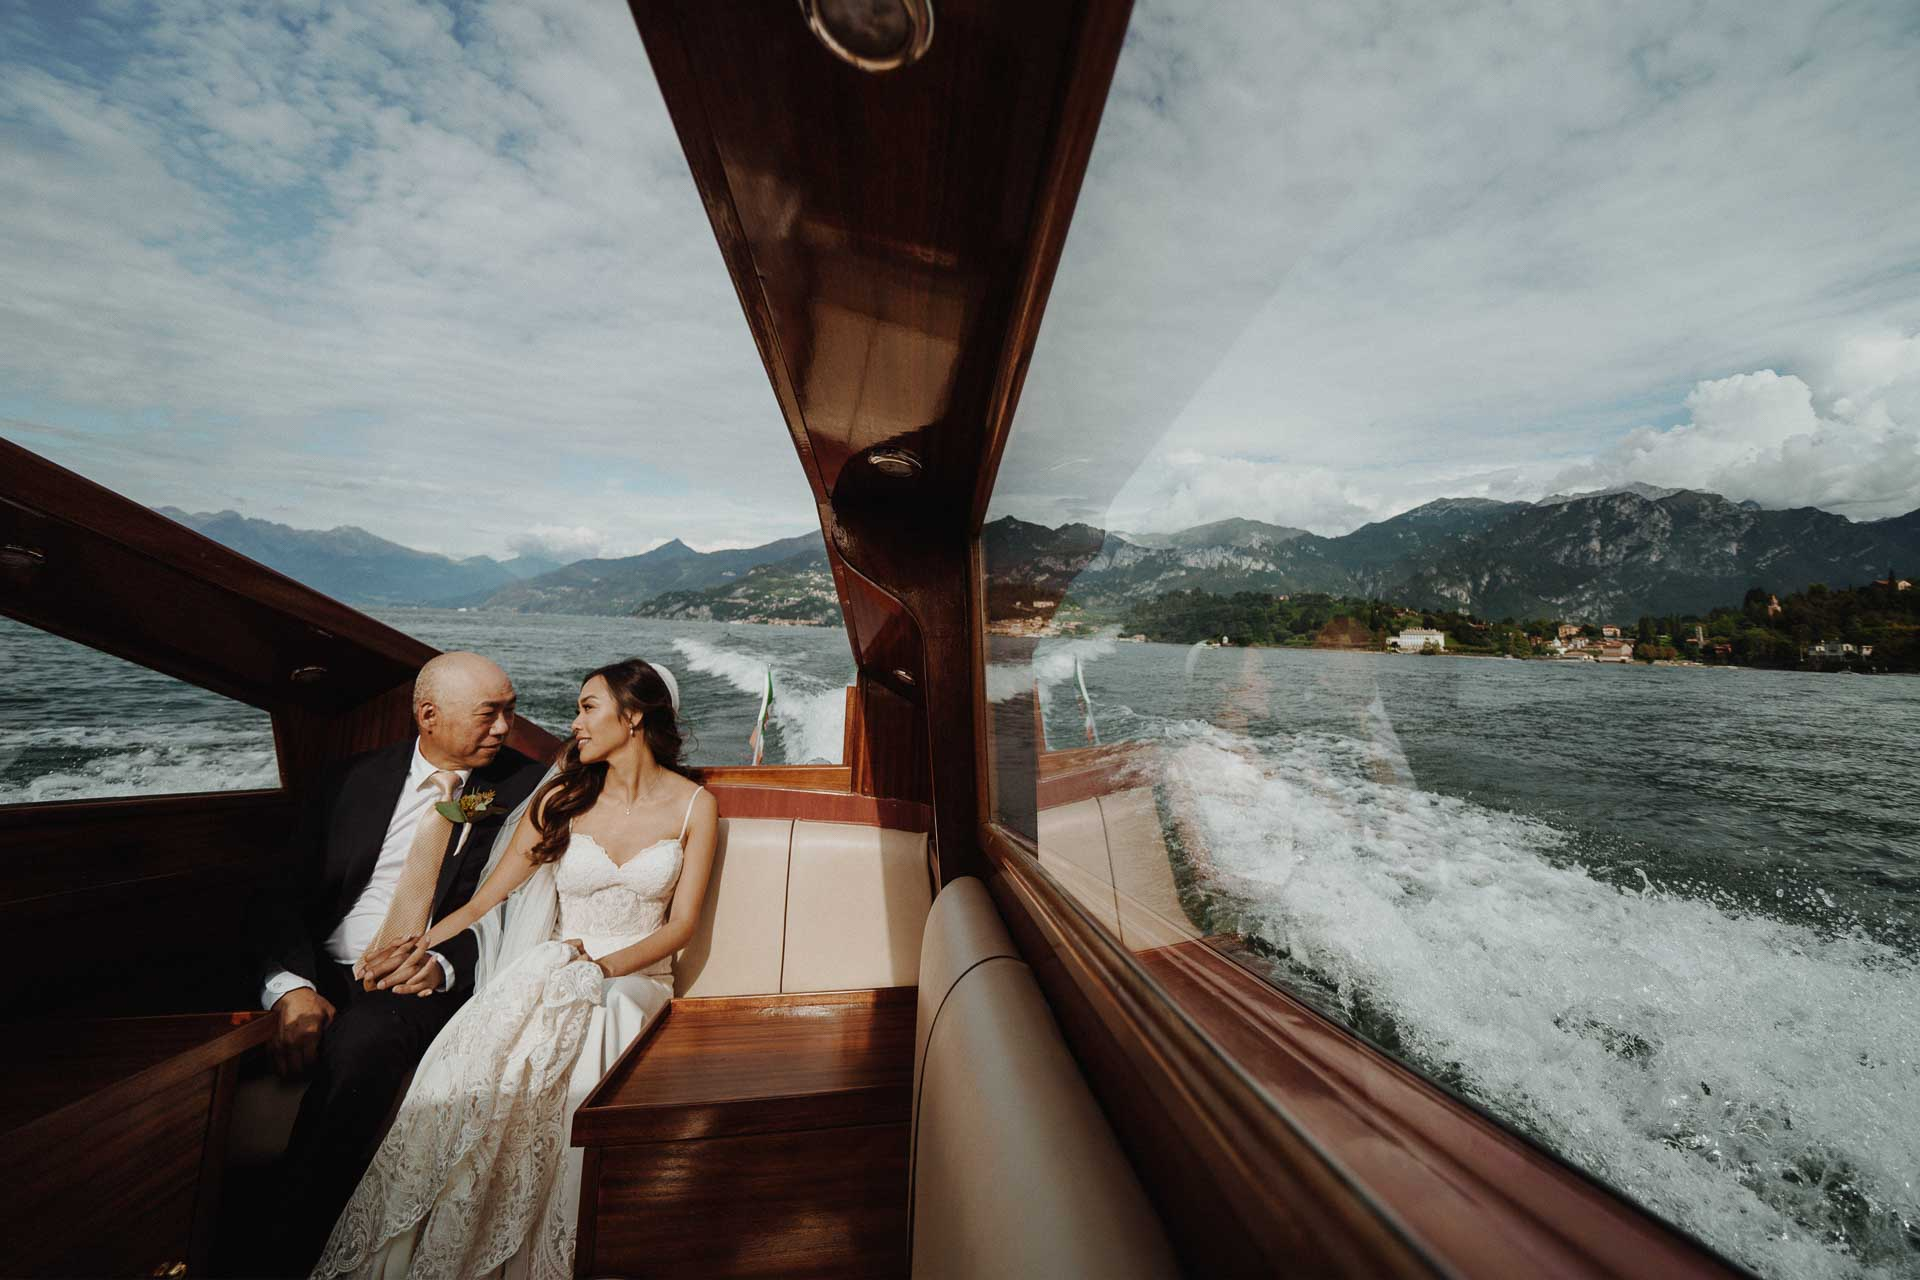 a frame from a wedding on como lake